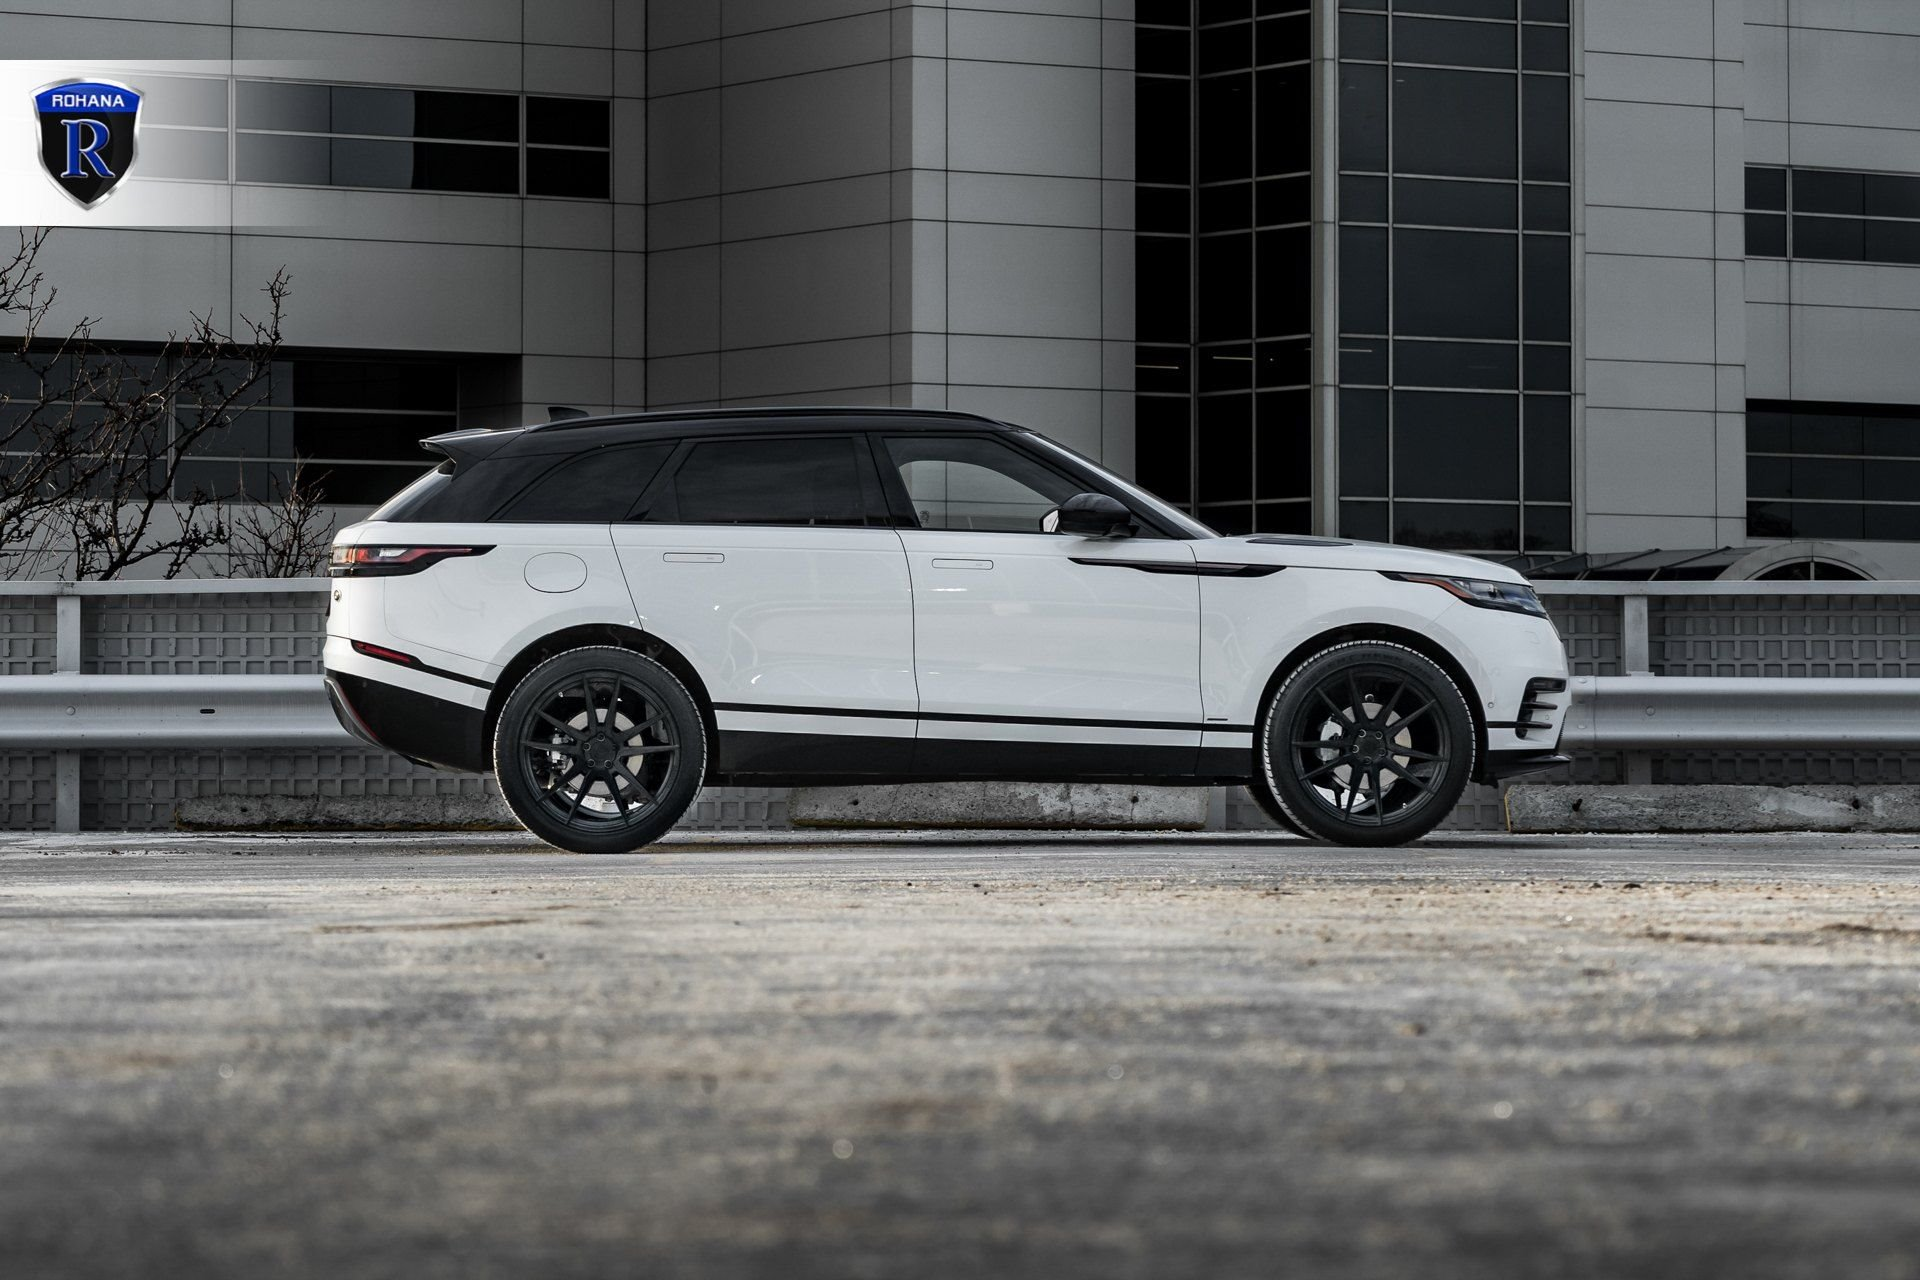 New 2019 Land Rover-Range Rover Velar P250 S Range Rover Velar P250 S for sale $54,700 at M and V Leasing in Brooklyn NY 11223 1